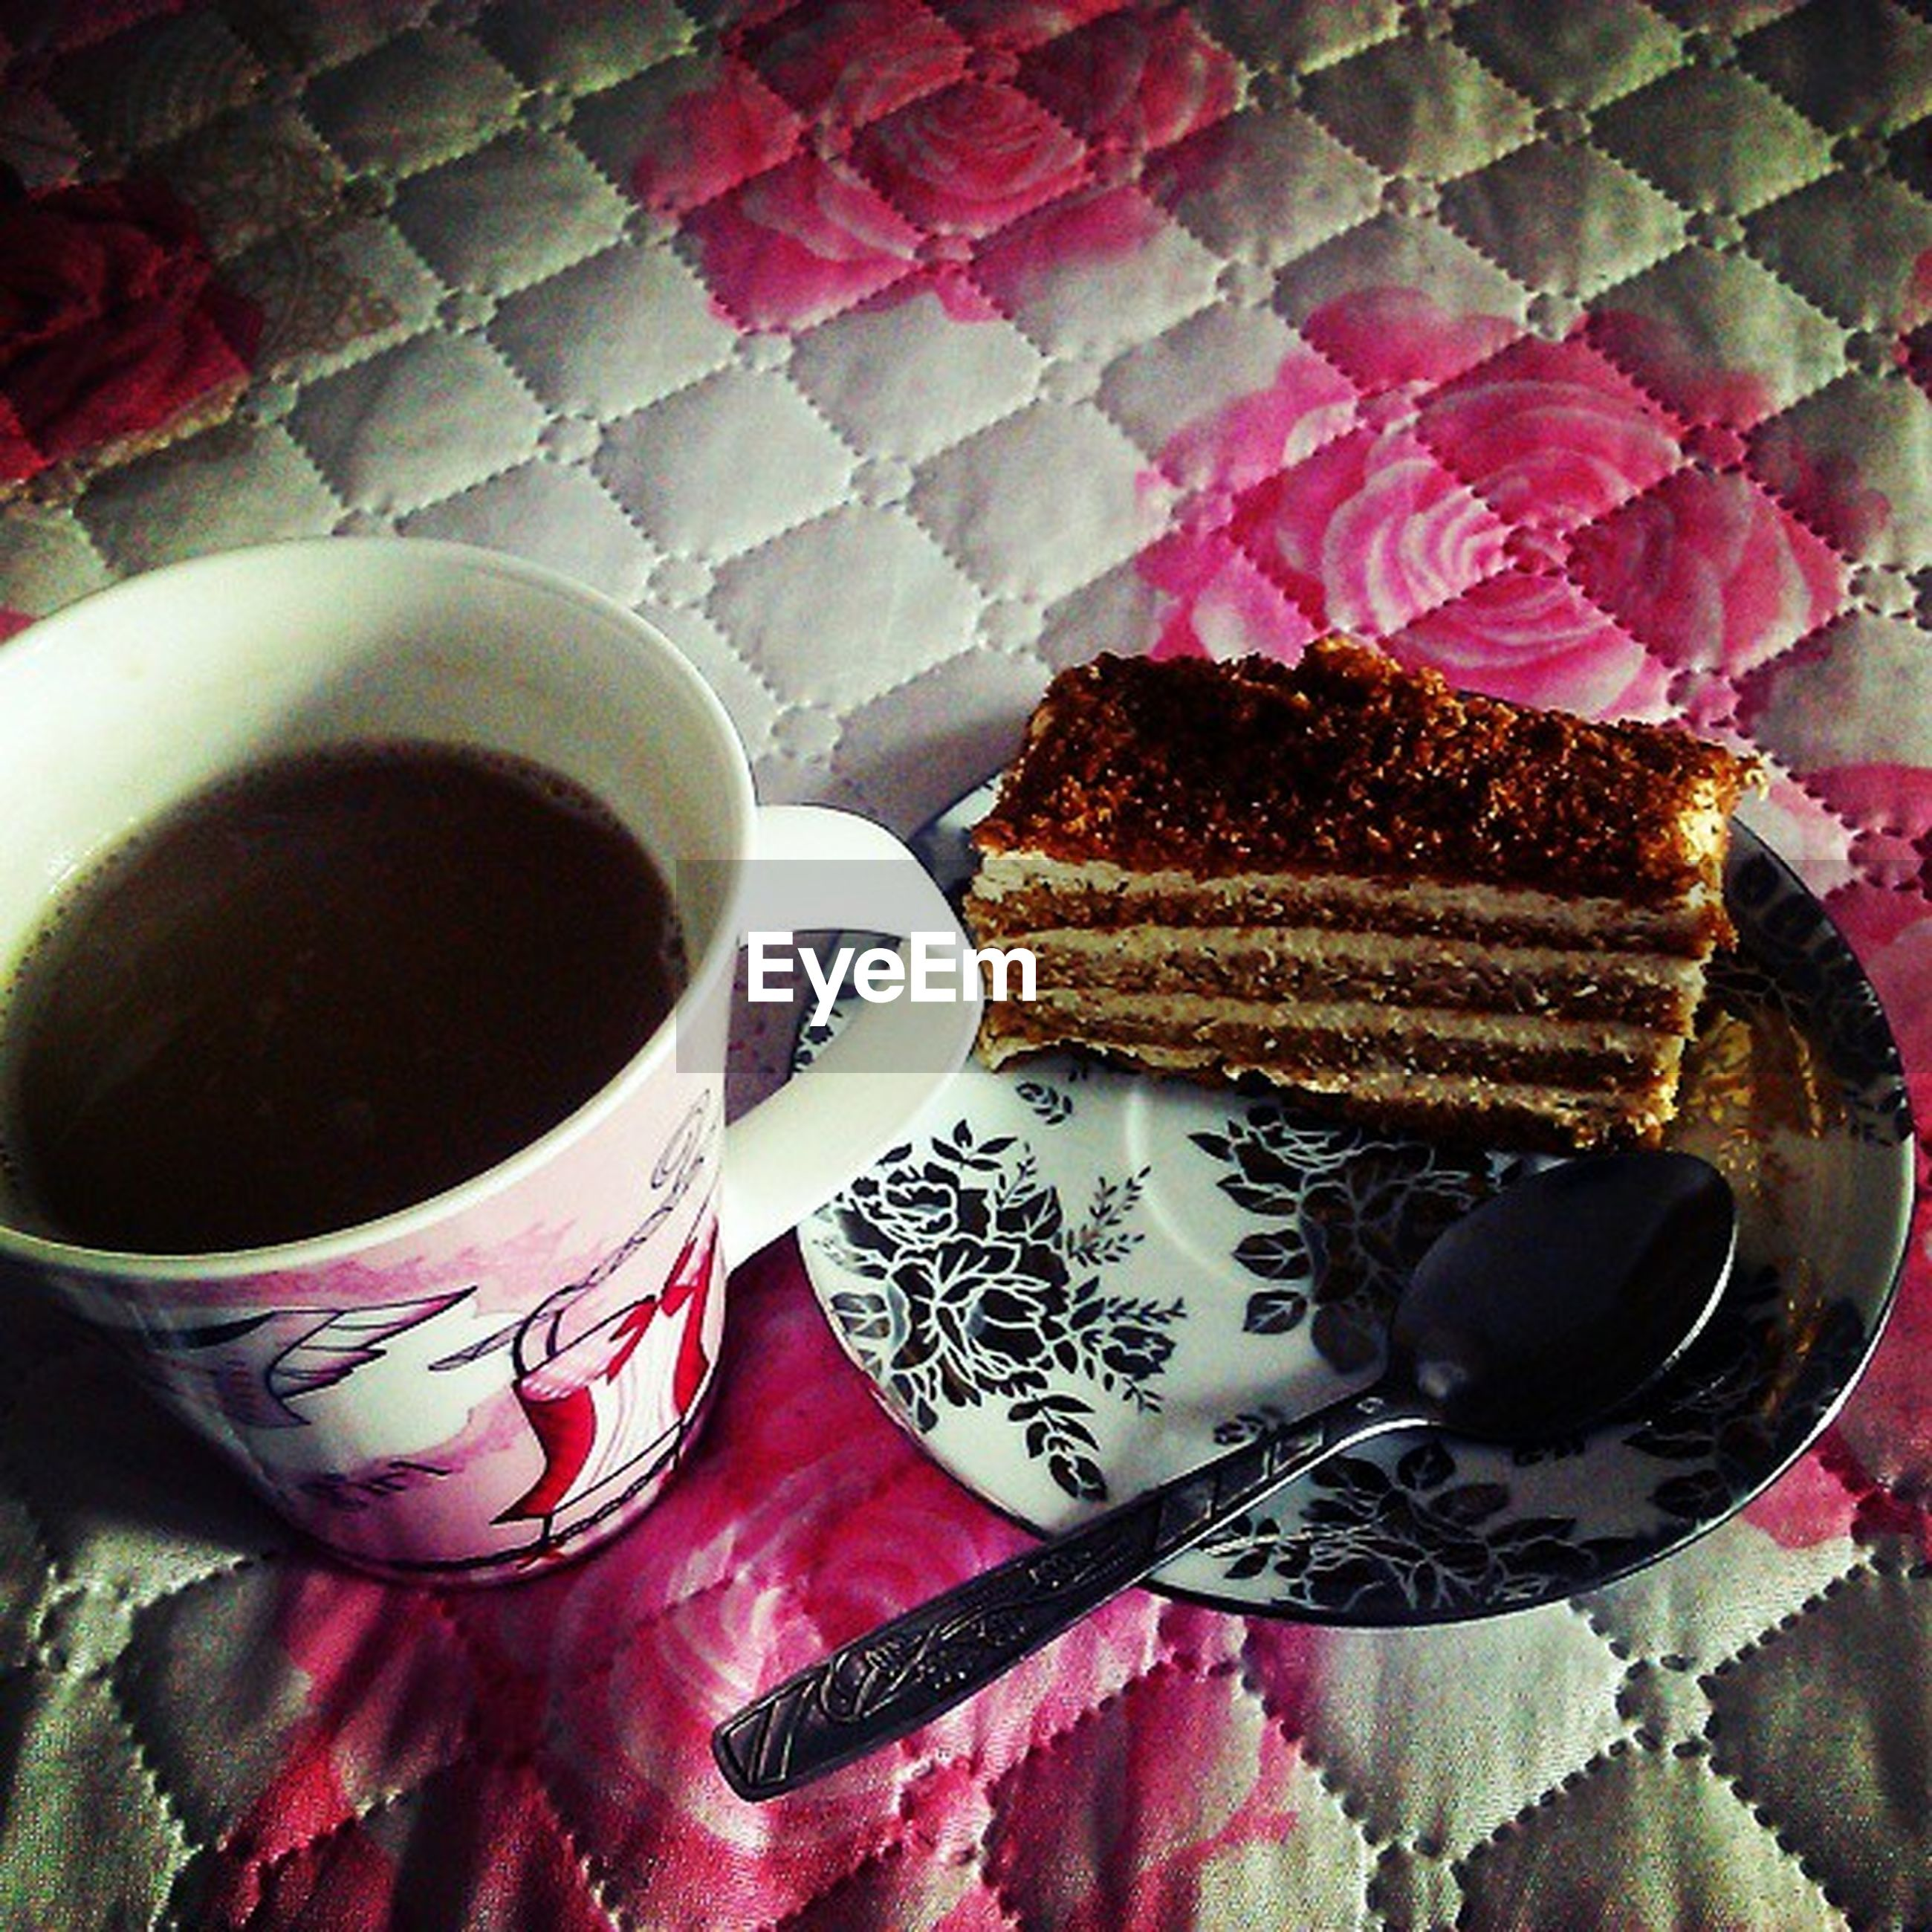 indoors, food and drink, freshness, still life, drink, table, refreshment, coffee cup, sweet food, high angle view, coffee - drink, tablecloth, dessert, saucer, cake, close-up, indulgence, unhealthy eating, cup, plate